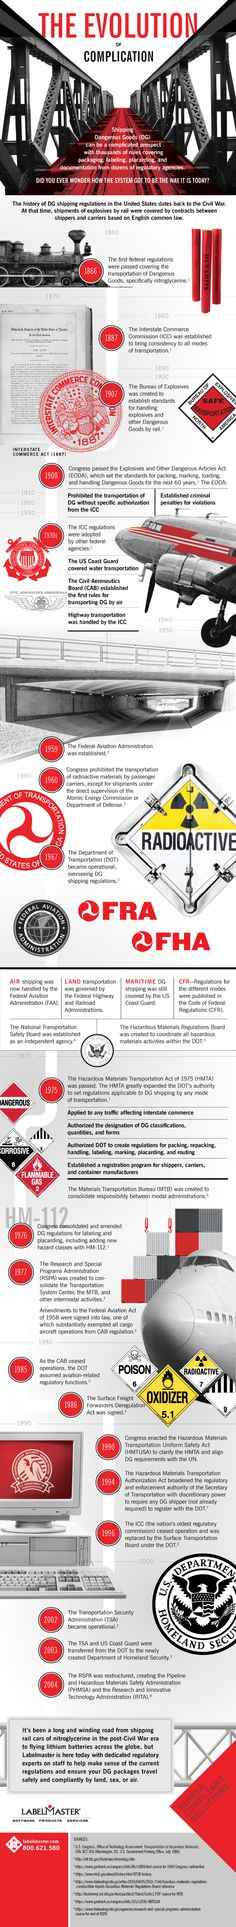 Today's fast-paced world may bear little resemblance to the 1860s, but the safe shipping of Dangerous Goods was every bit as important then as it is now. This infographic provides a brief retrospective on the key milestones and government agencies that have shaped US shipping regulations over the past 100+ years. #hazmat http://blog.labelmaster.com